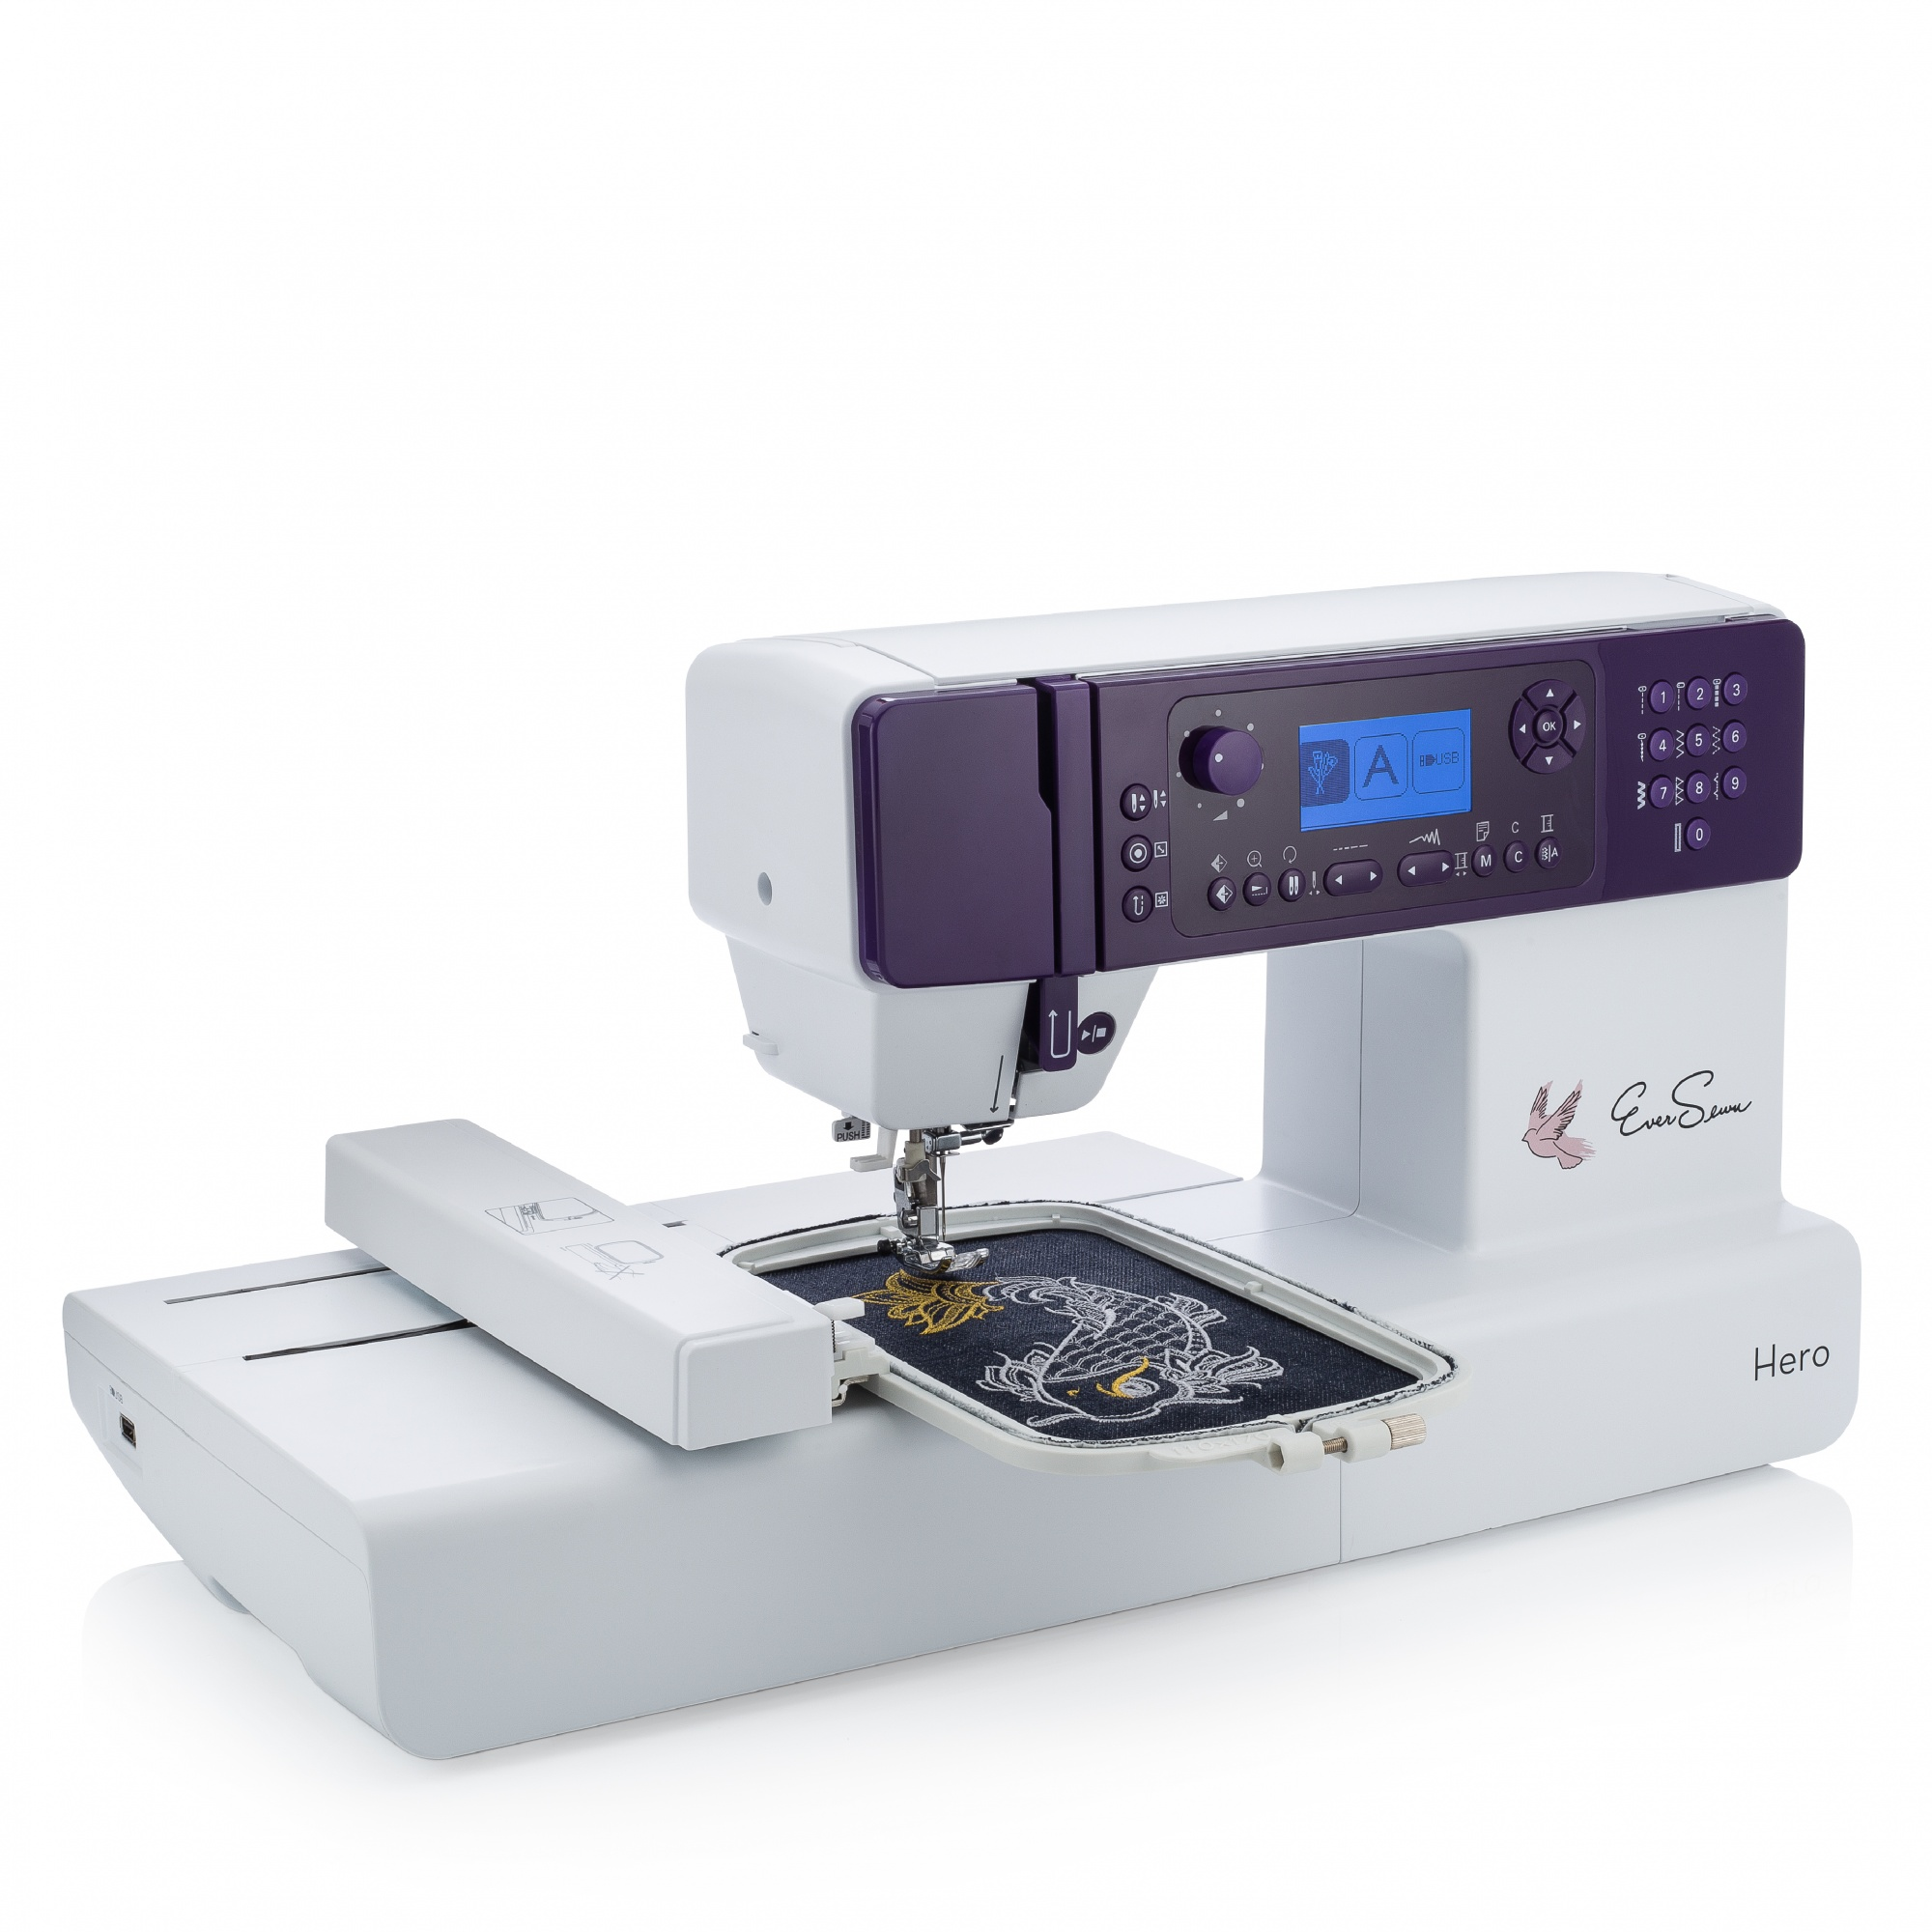 Cheap Sewing Machines Australia Eversewn Hero 400 Stitch Multi Featured Durable Sewing